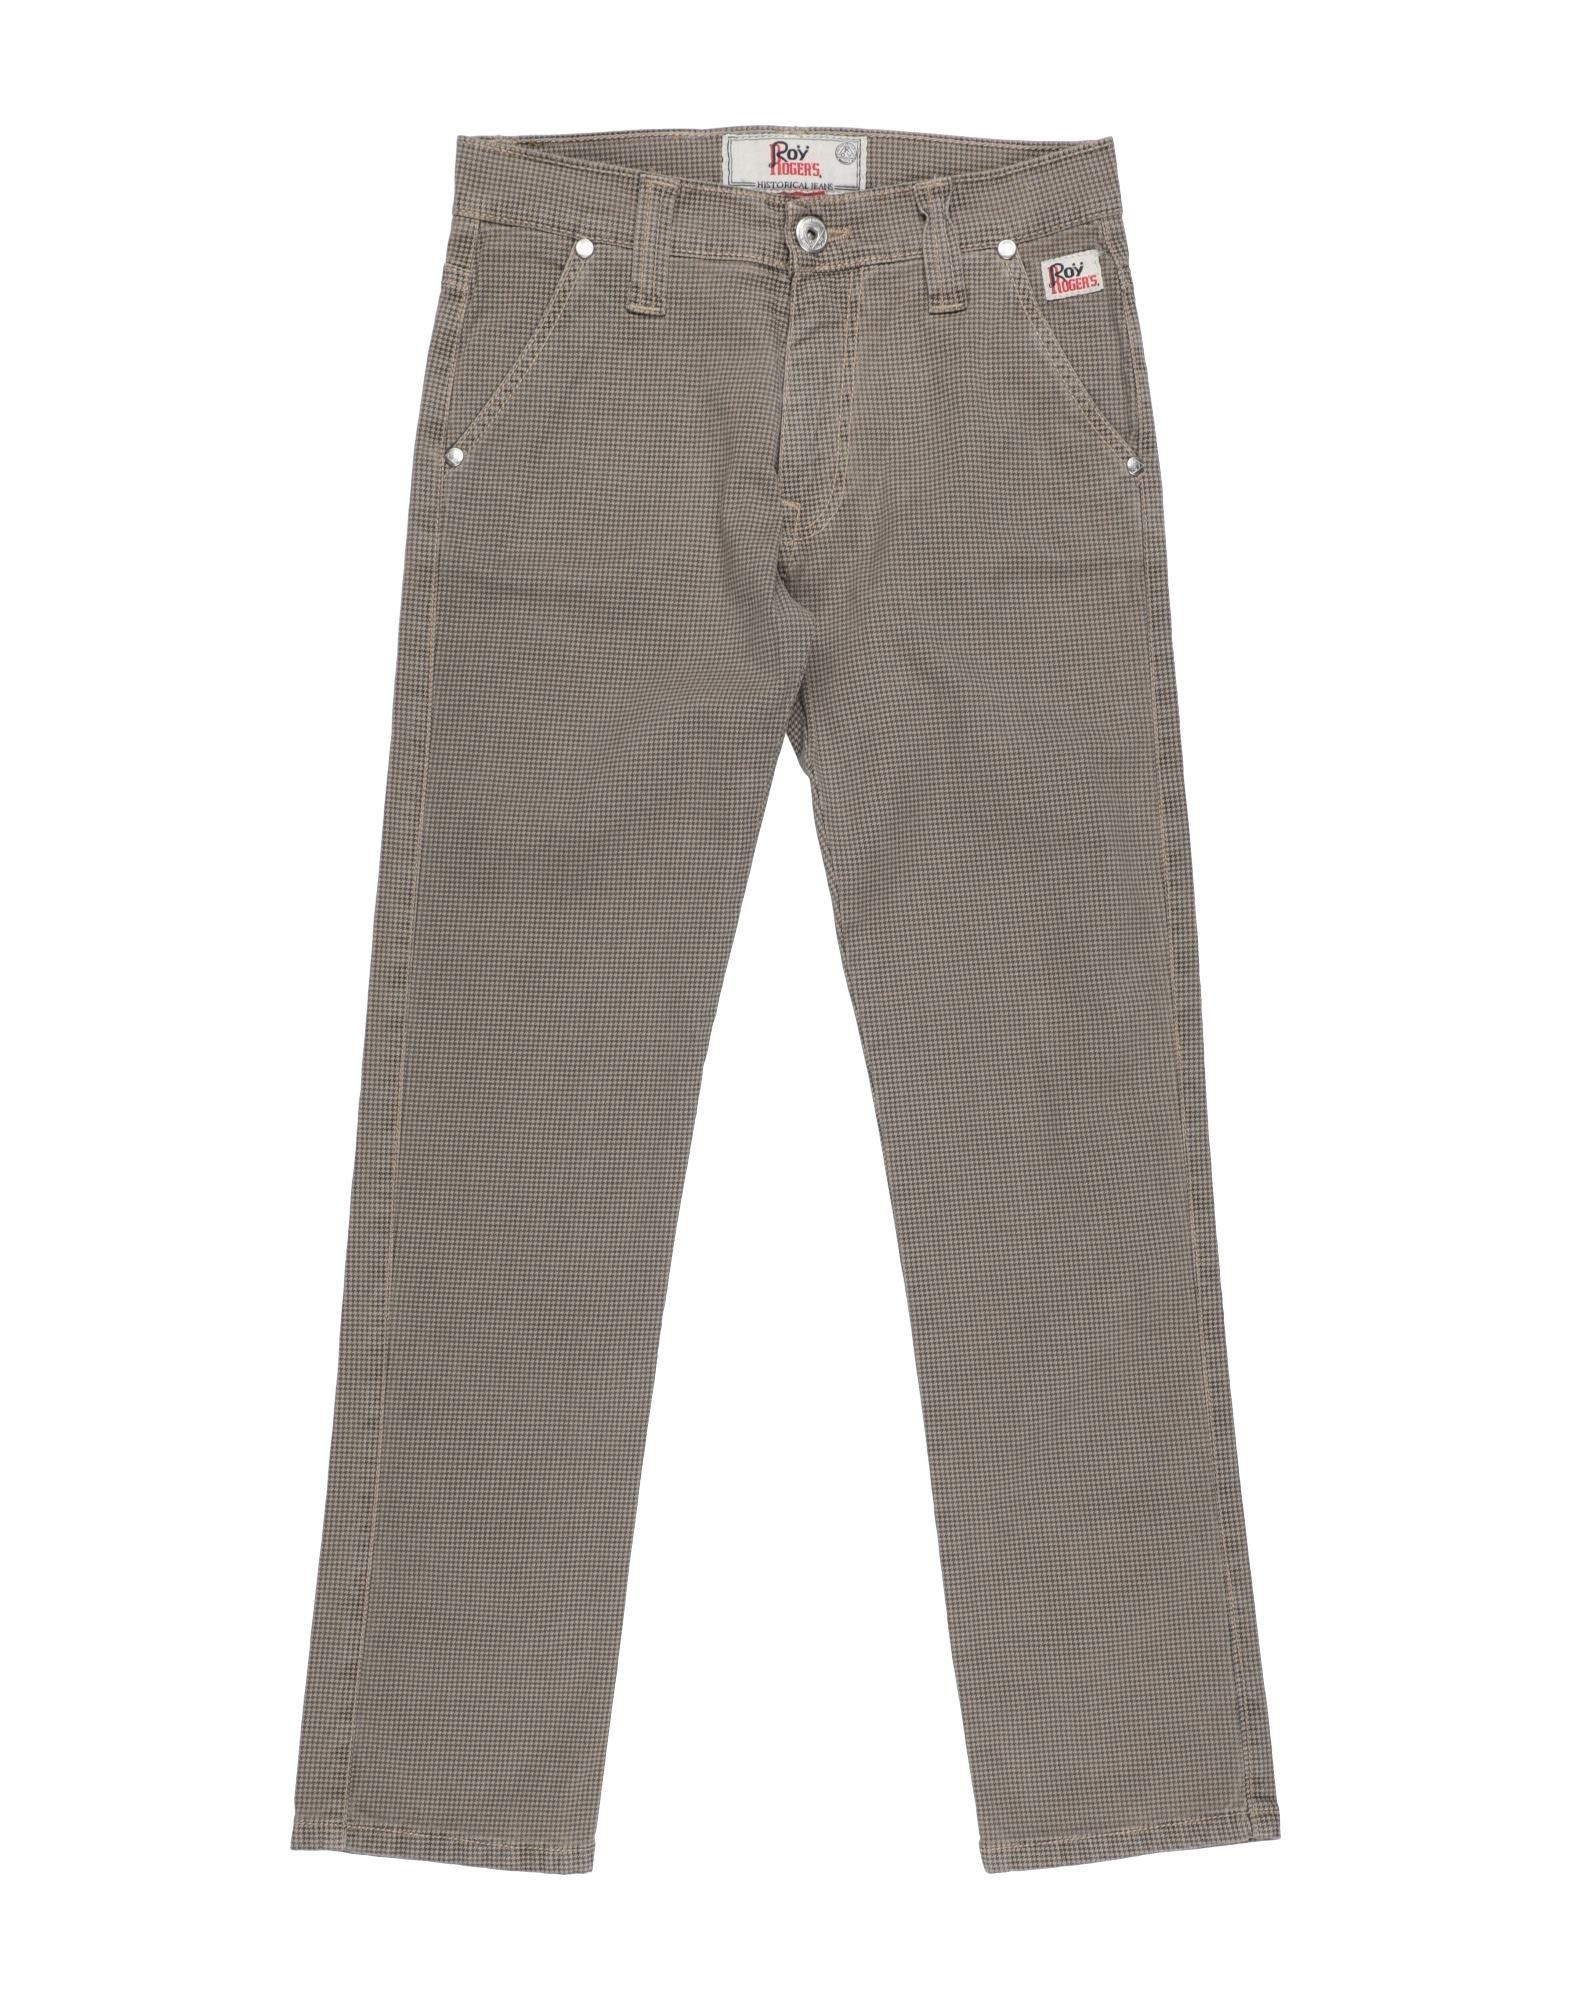 Roy Rogers Kids' Casual Pants In Gray